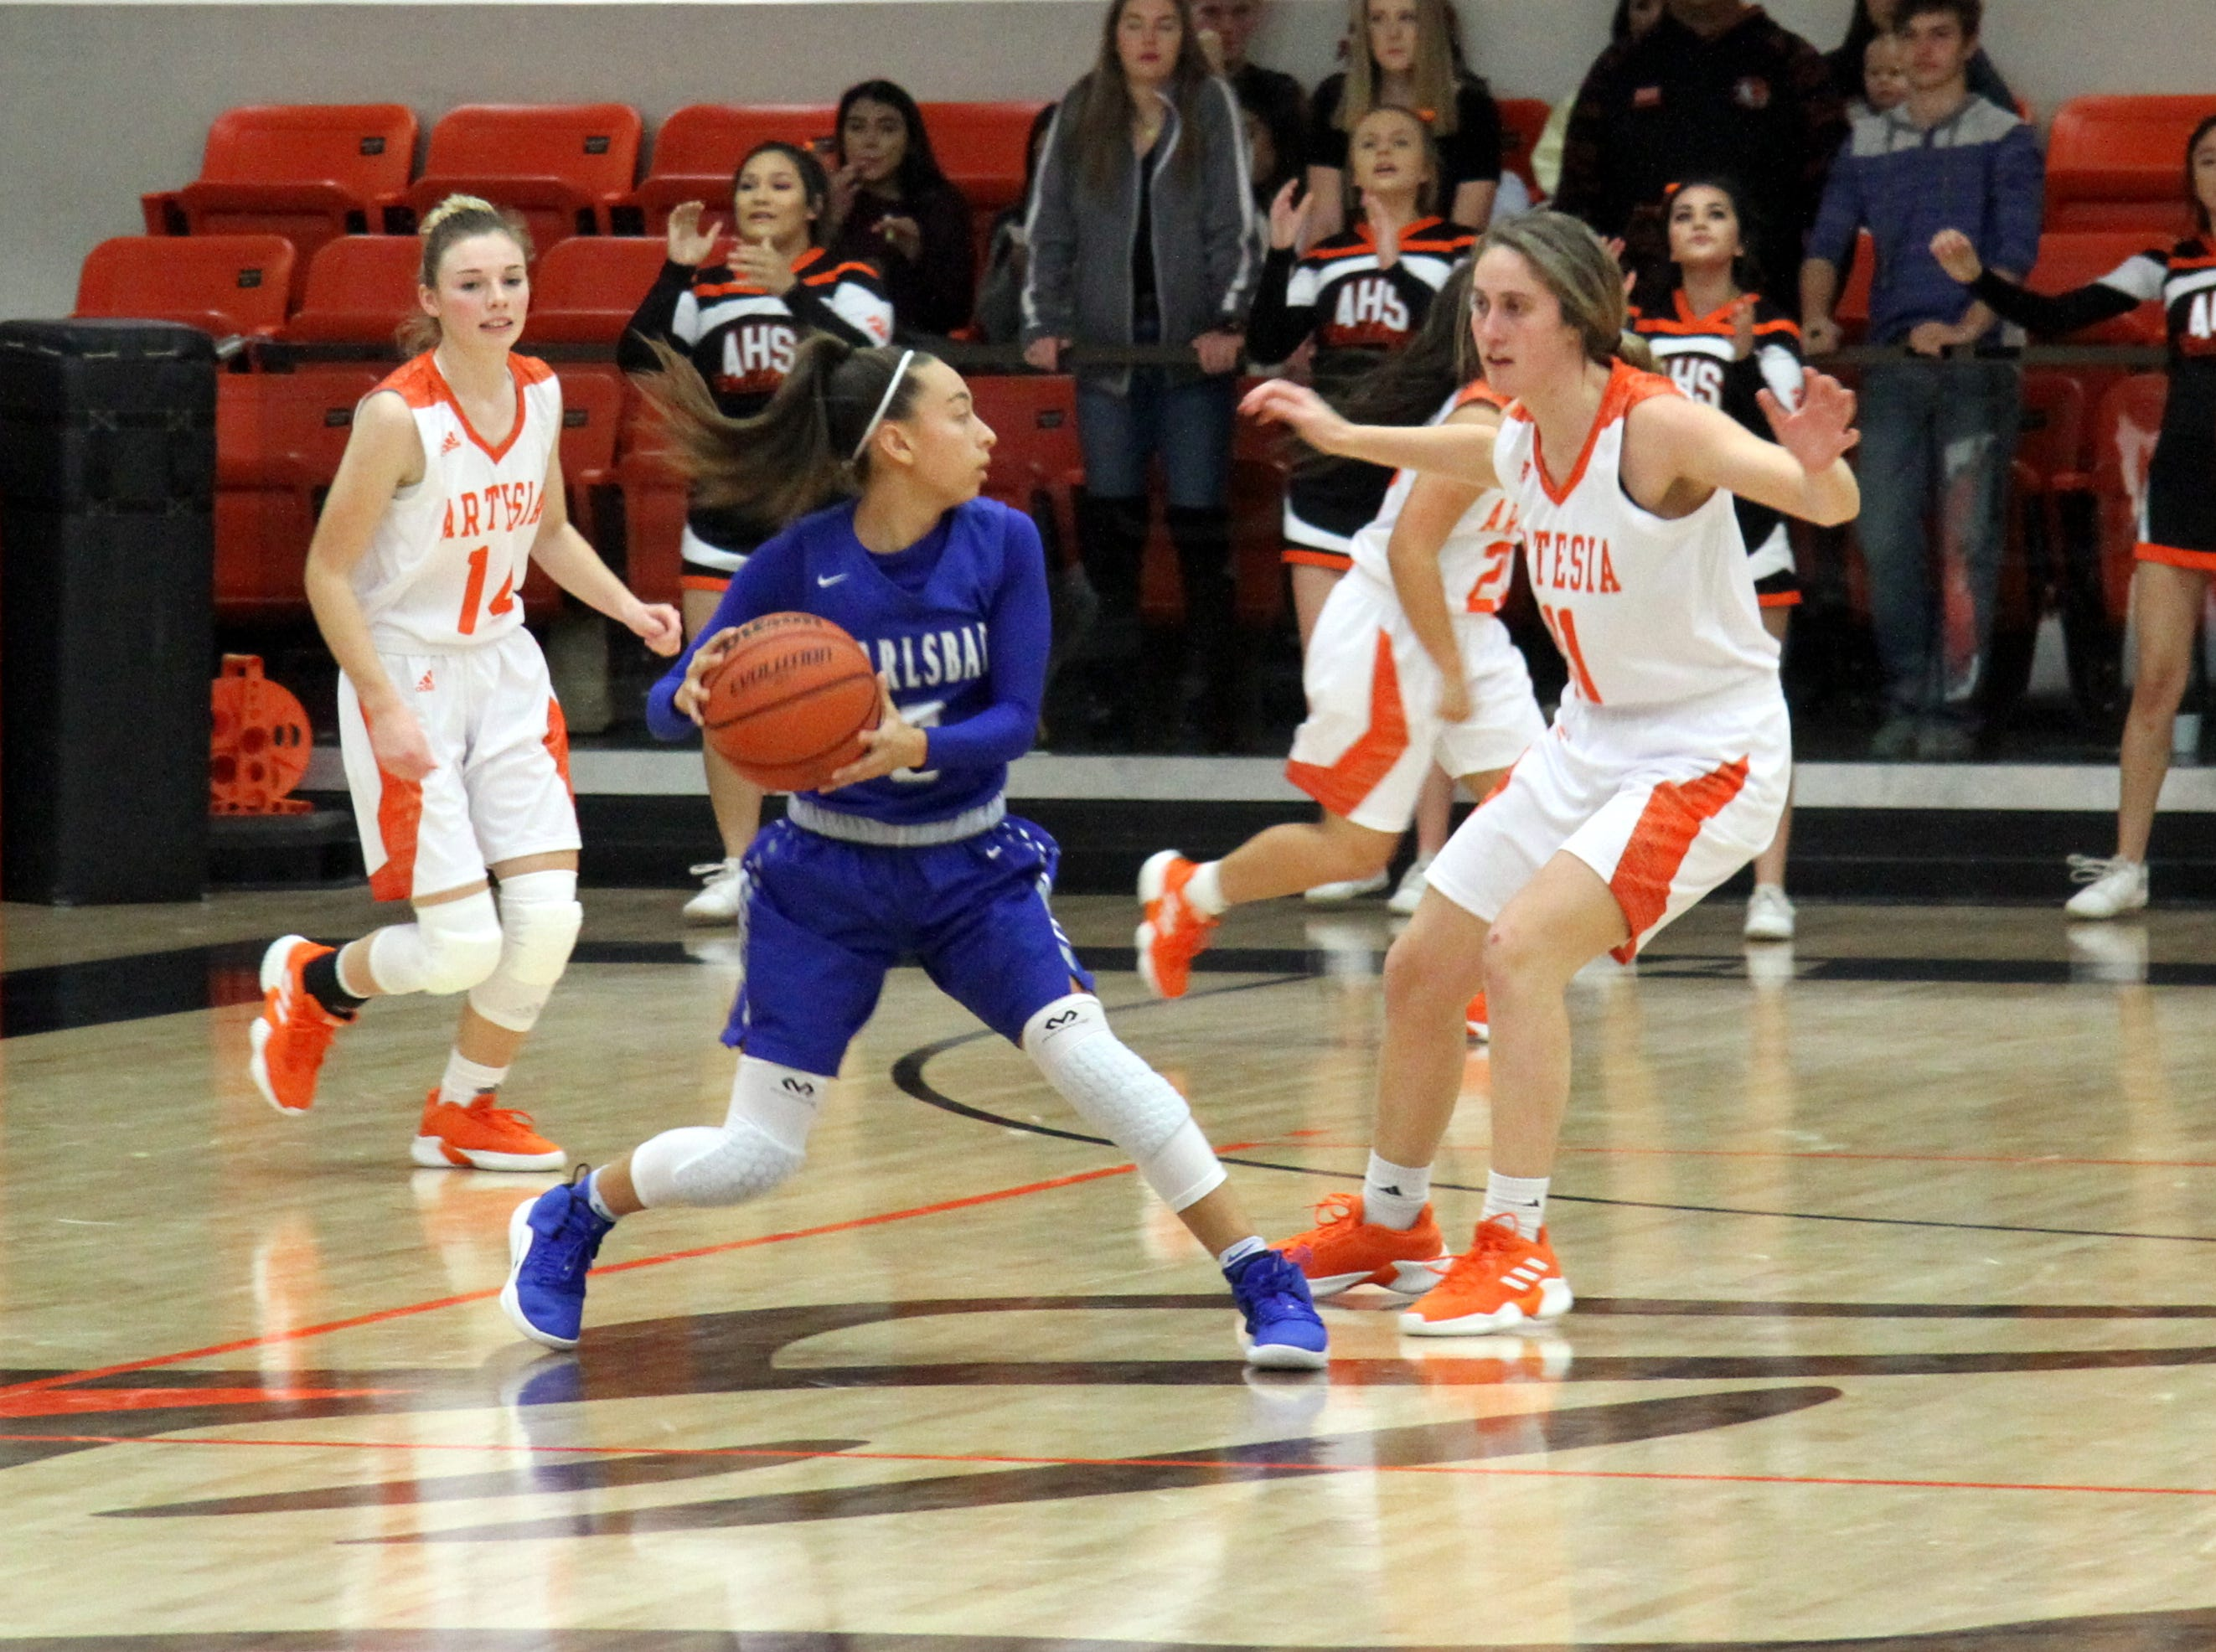 Carlsbad's Bailee Molina looks to pass while Artesia's Makinli Taylor defends during Saturday's third-place game in Artesia.